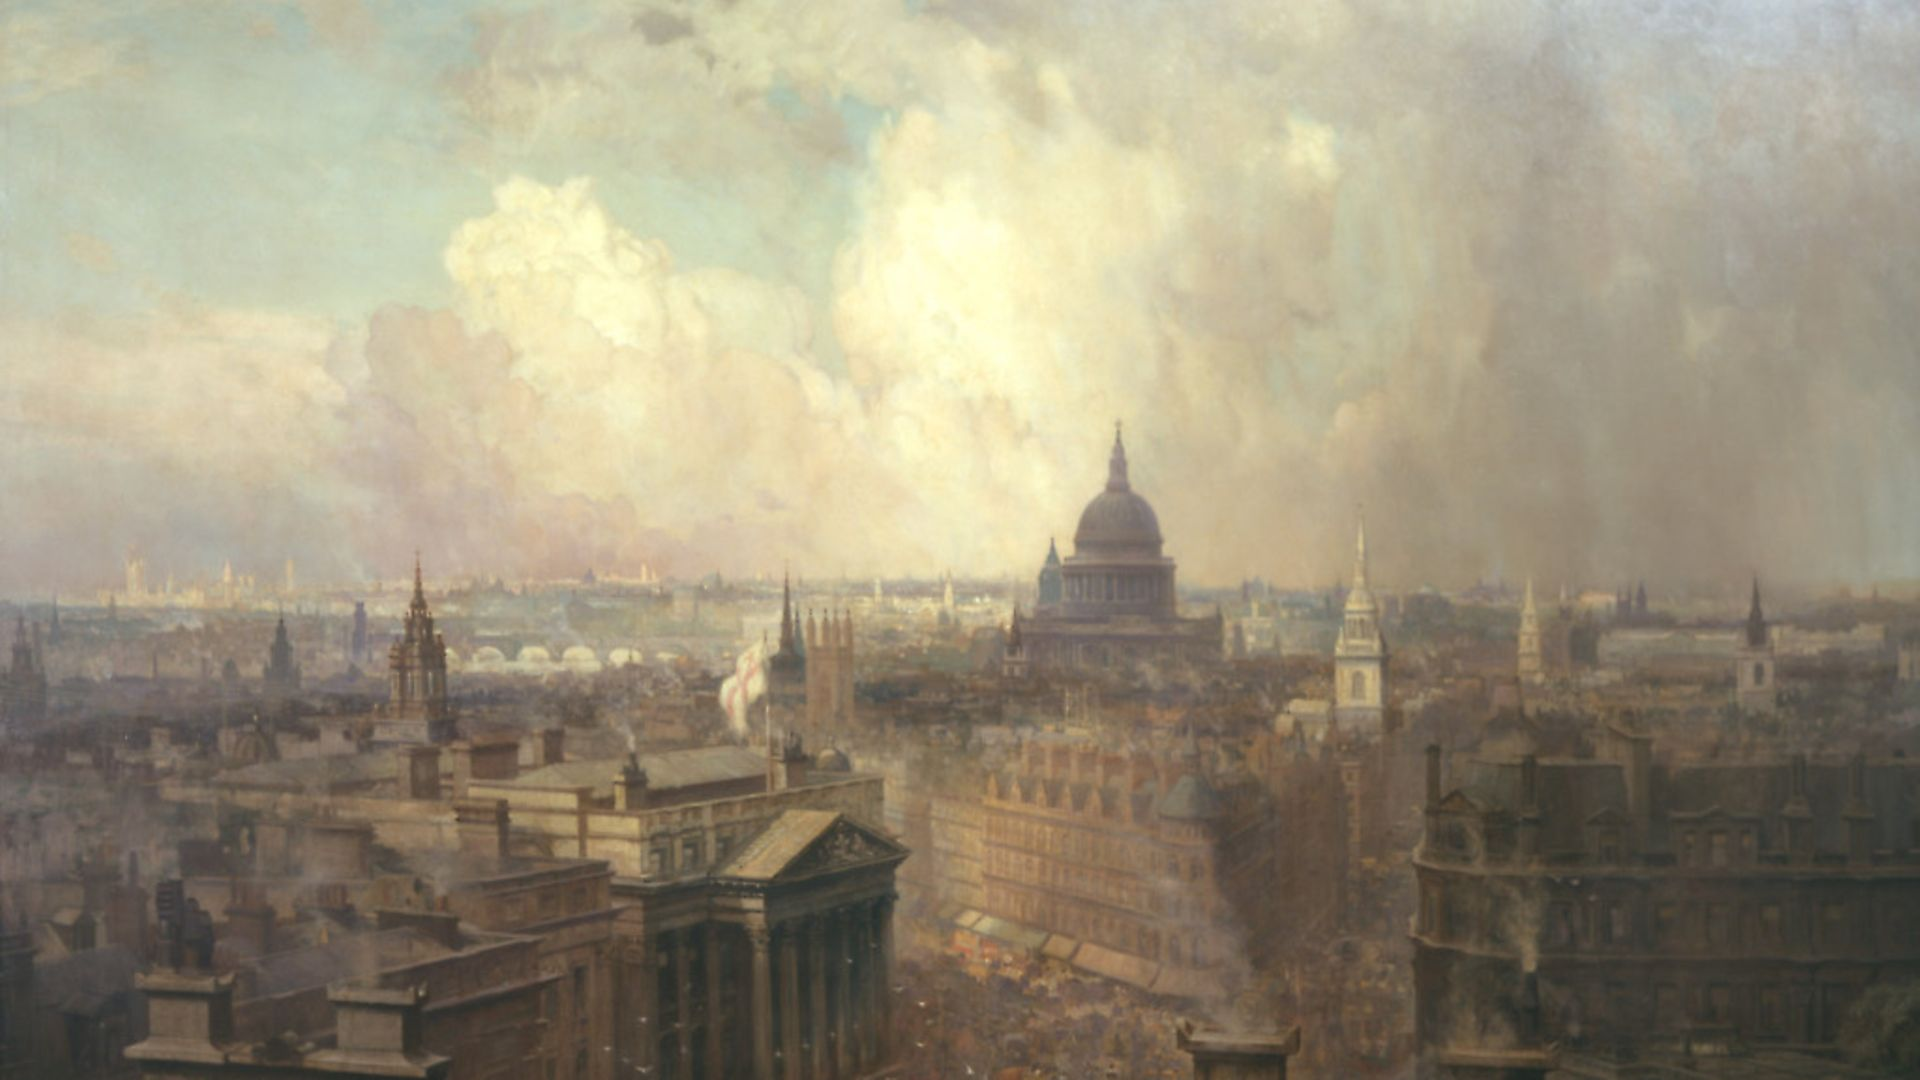 The Heart of the Empire by Niels Moeller Lund, will feature in the exhibition at the Guildhall Art Gallery - Credit: Archant